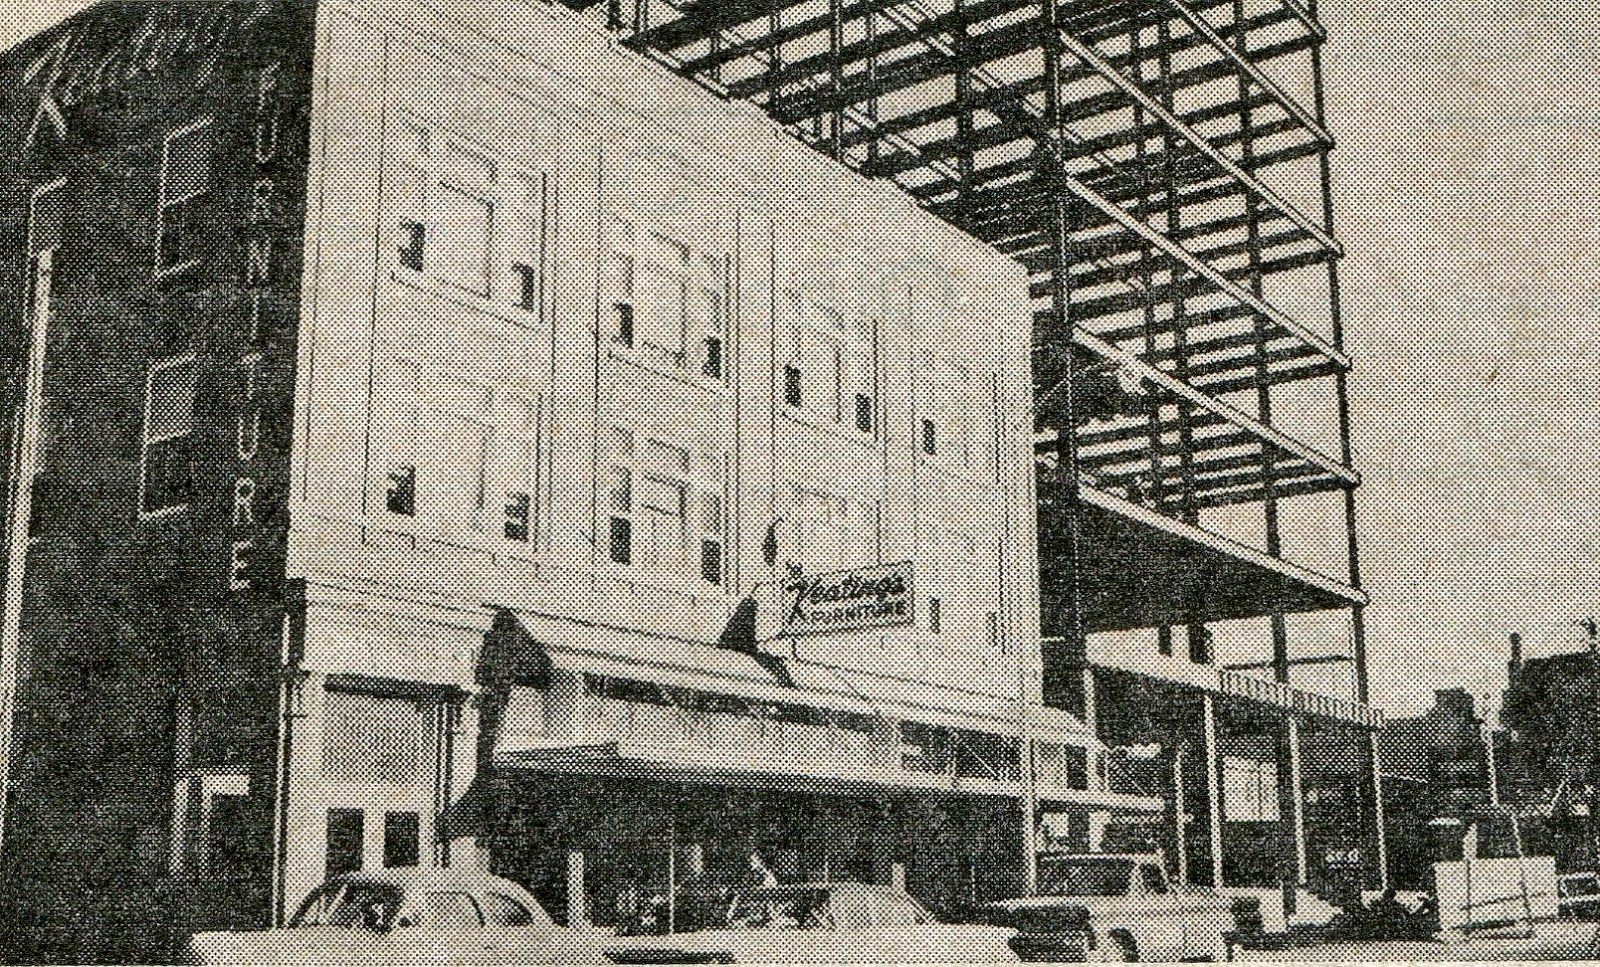 Pictured Below Is I Keatings In Its Location On 1st St SW .... Behind The  Store Is The Midwest Federal Building Under Construction